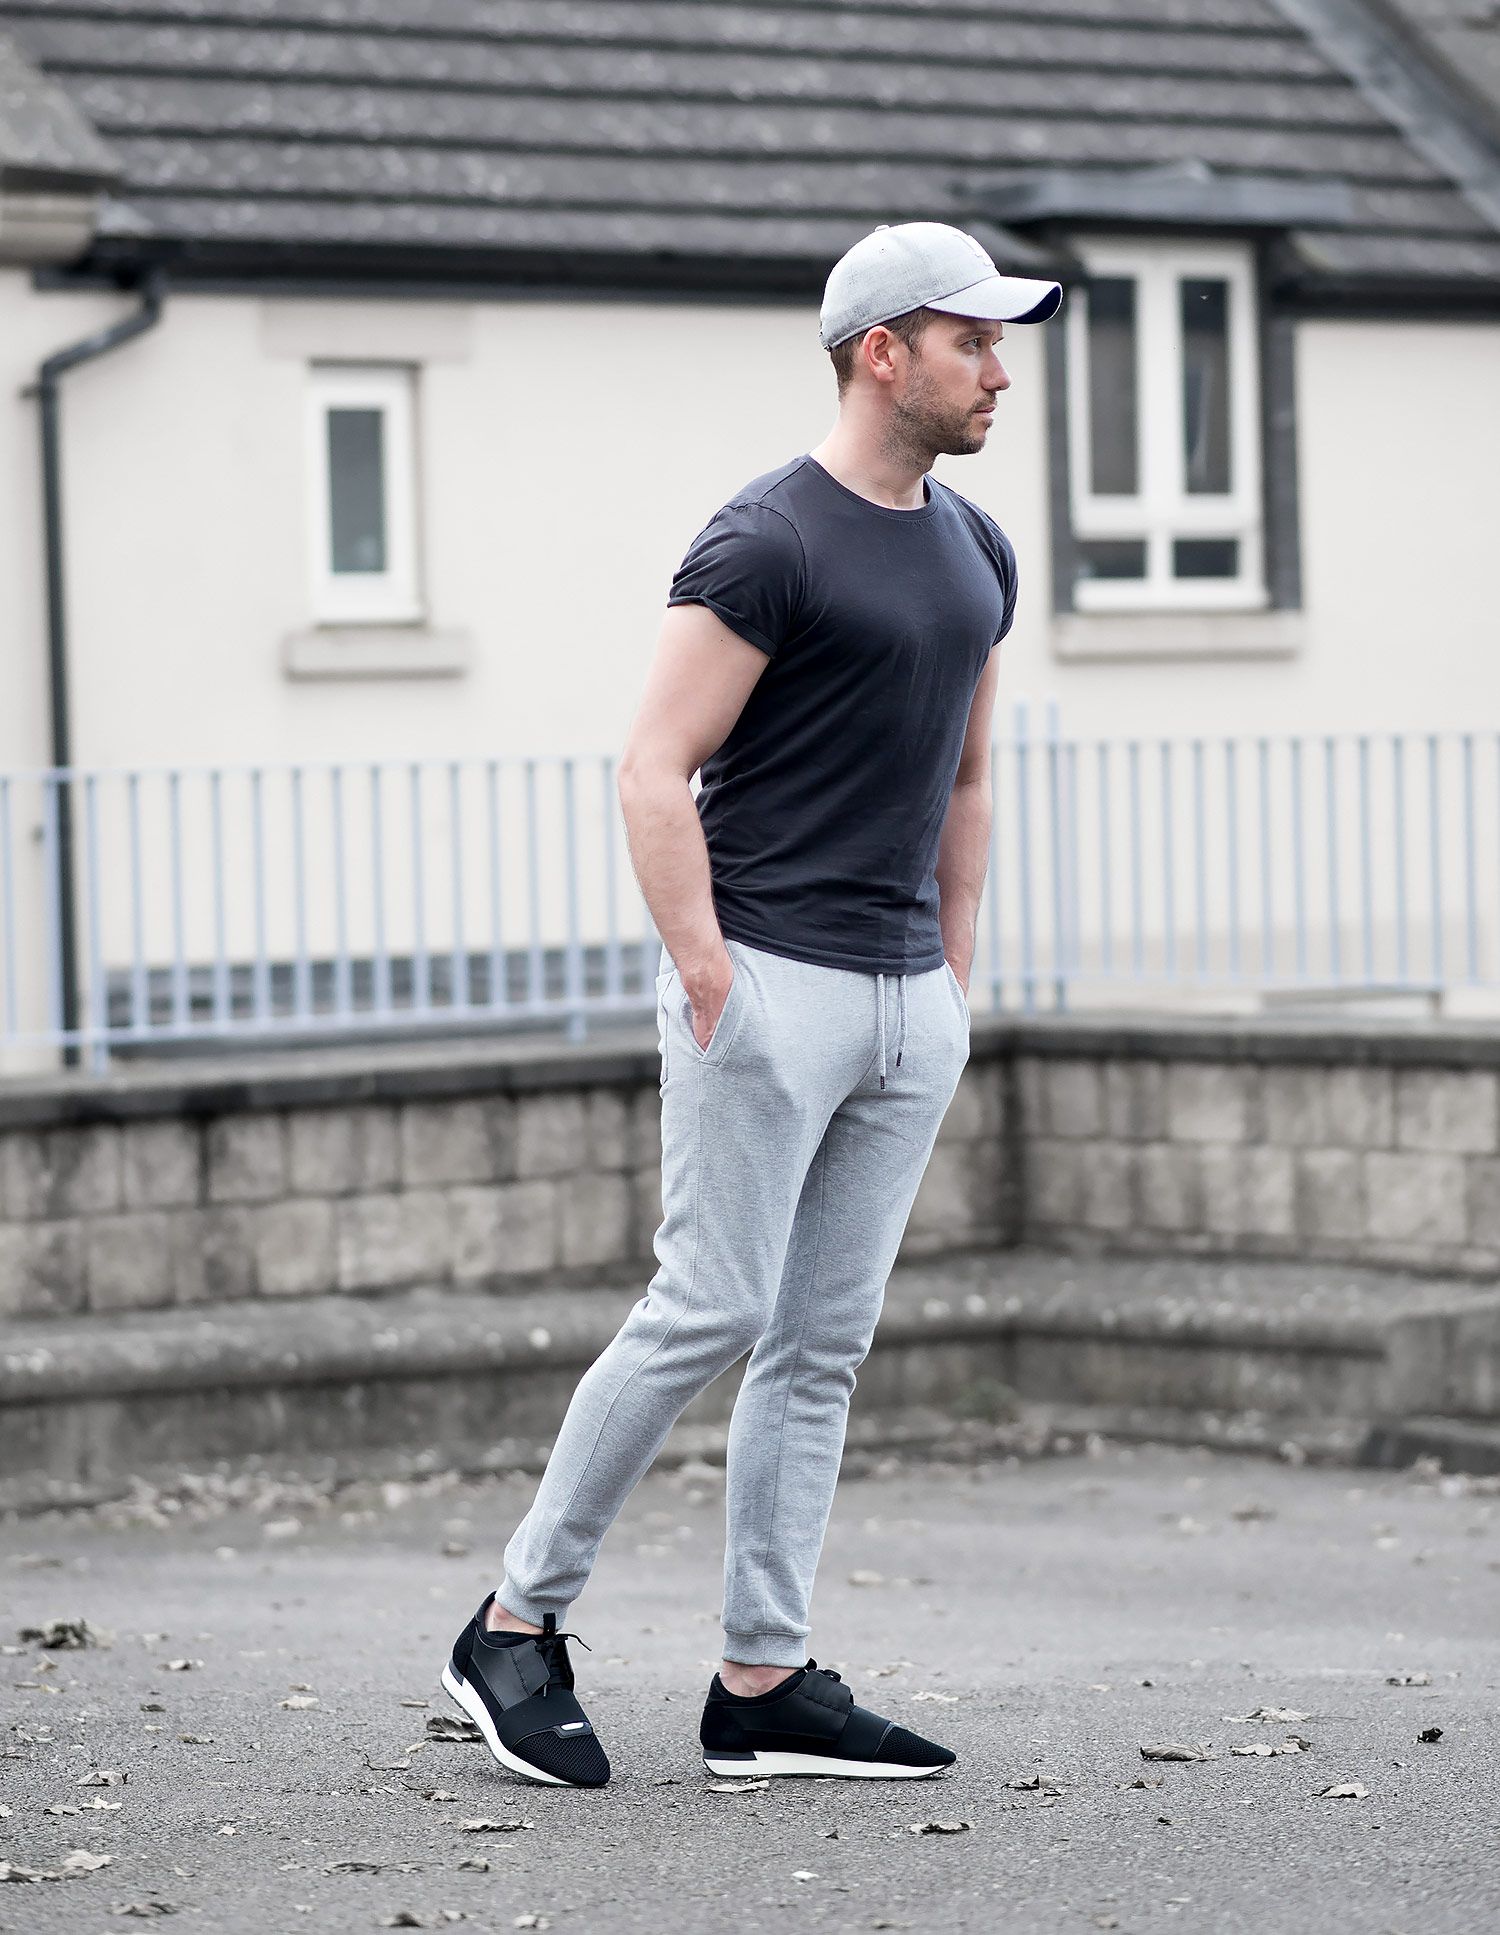 Topman Joggers And Balenciaga Race Runners Outfit | Your Average Guy